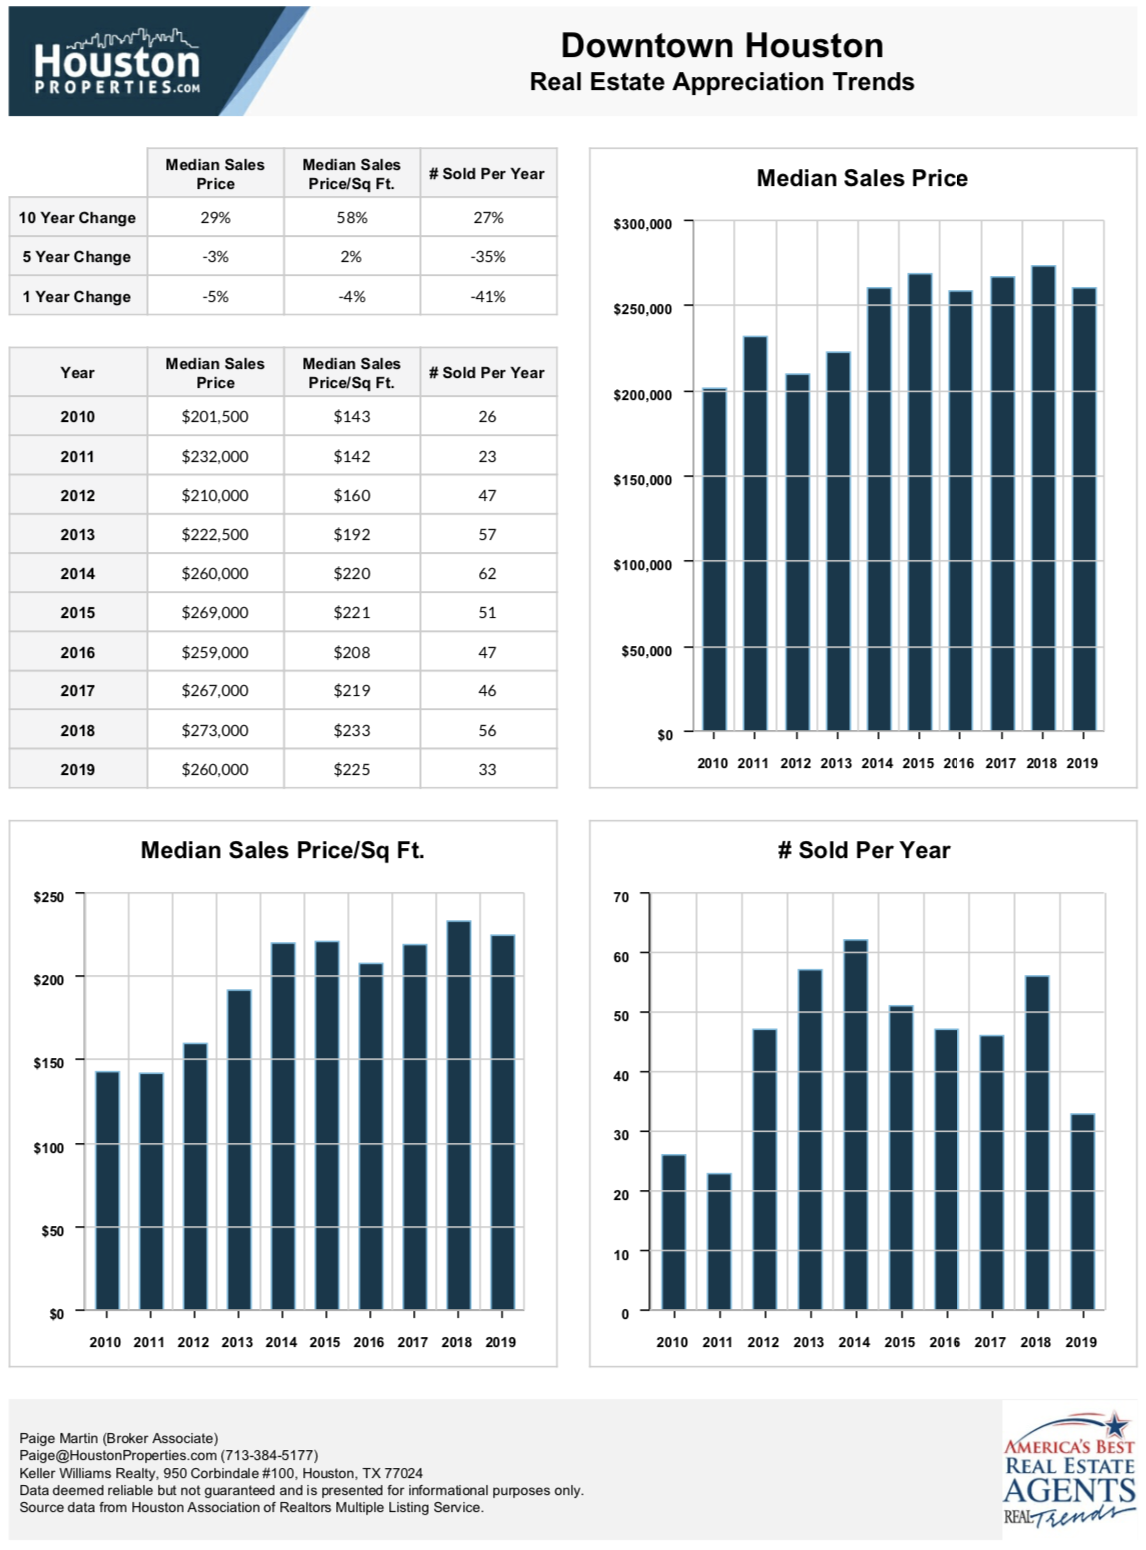 Downtown Houston real estate trends